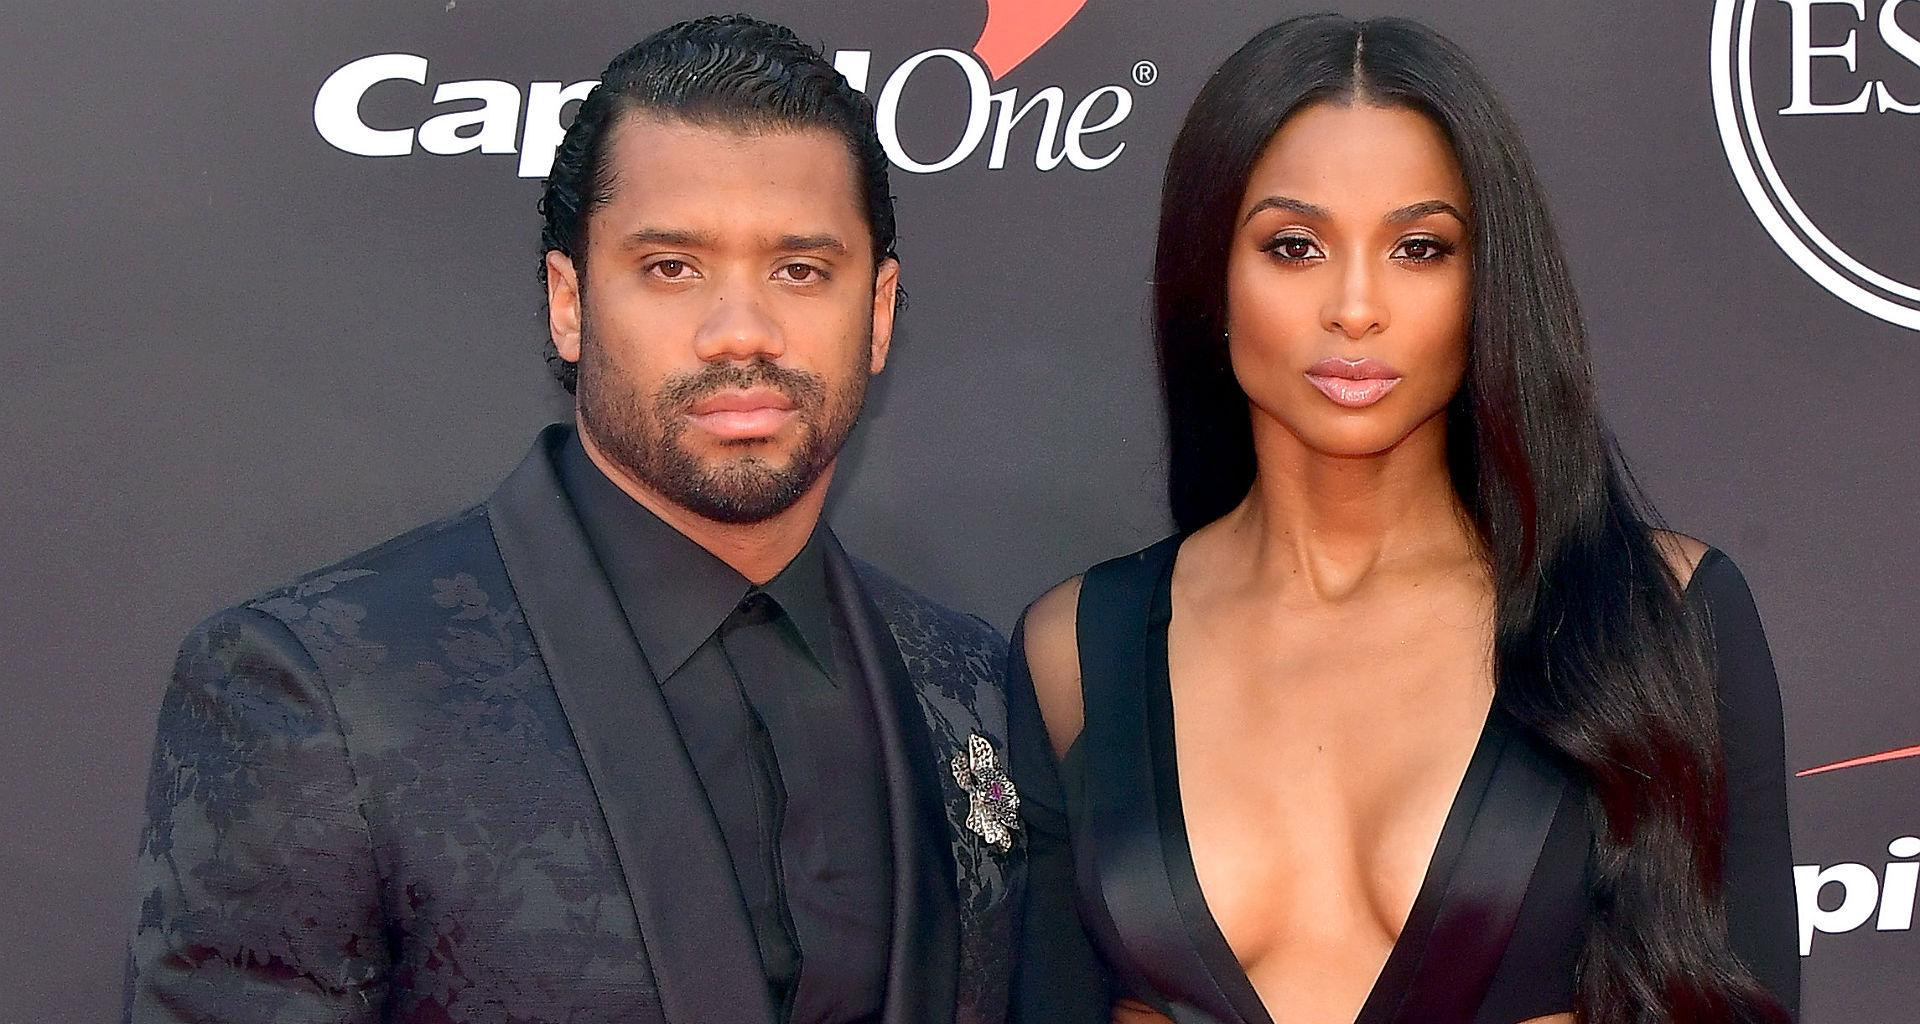 Keke Palmer Drops An Interesting Message About Ciara's Life - Read It Here